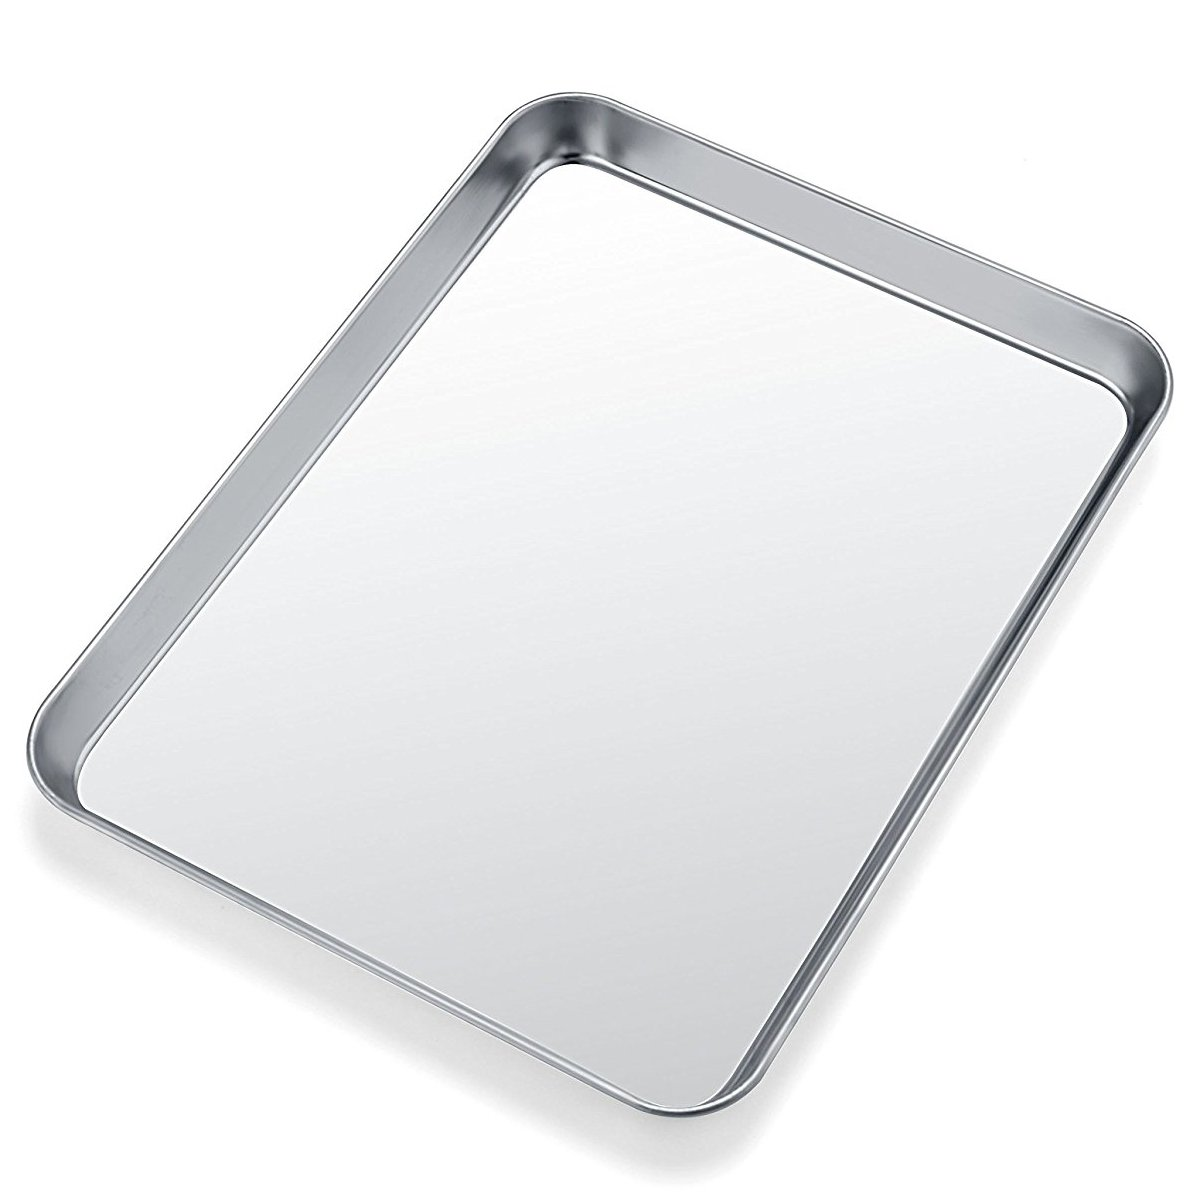 Baking Pans Sheet, Stainless Steel Baking Pan Cookie Sheets for Toaster Oven, Umite Chef Nonstick Tray Pan, Superior Mirror Finish, Easy Clean, Dishwasher Safe, 9 x 7 x 1 inch